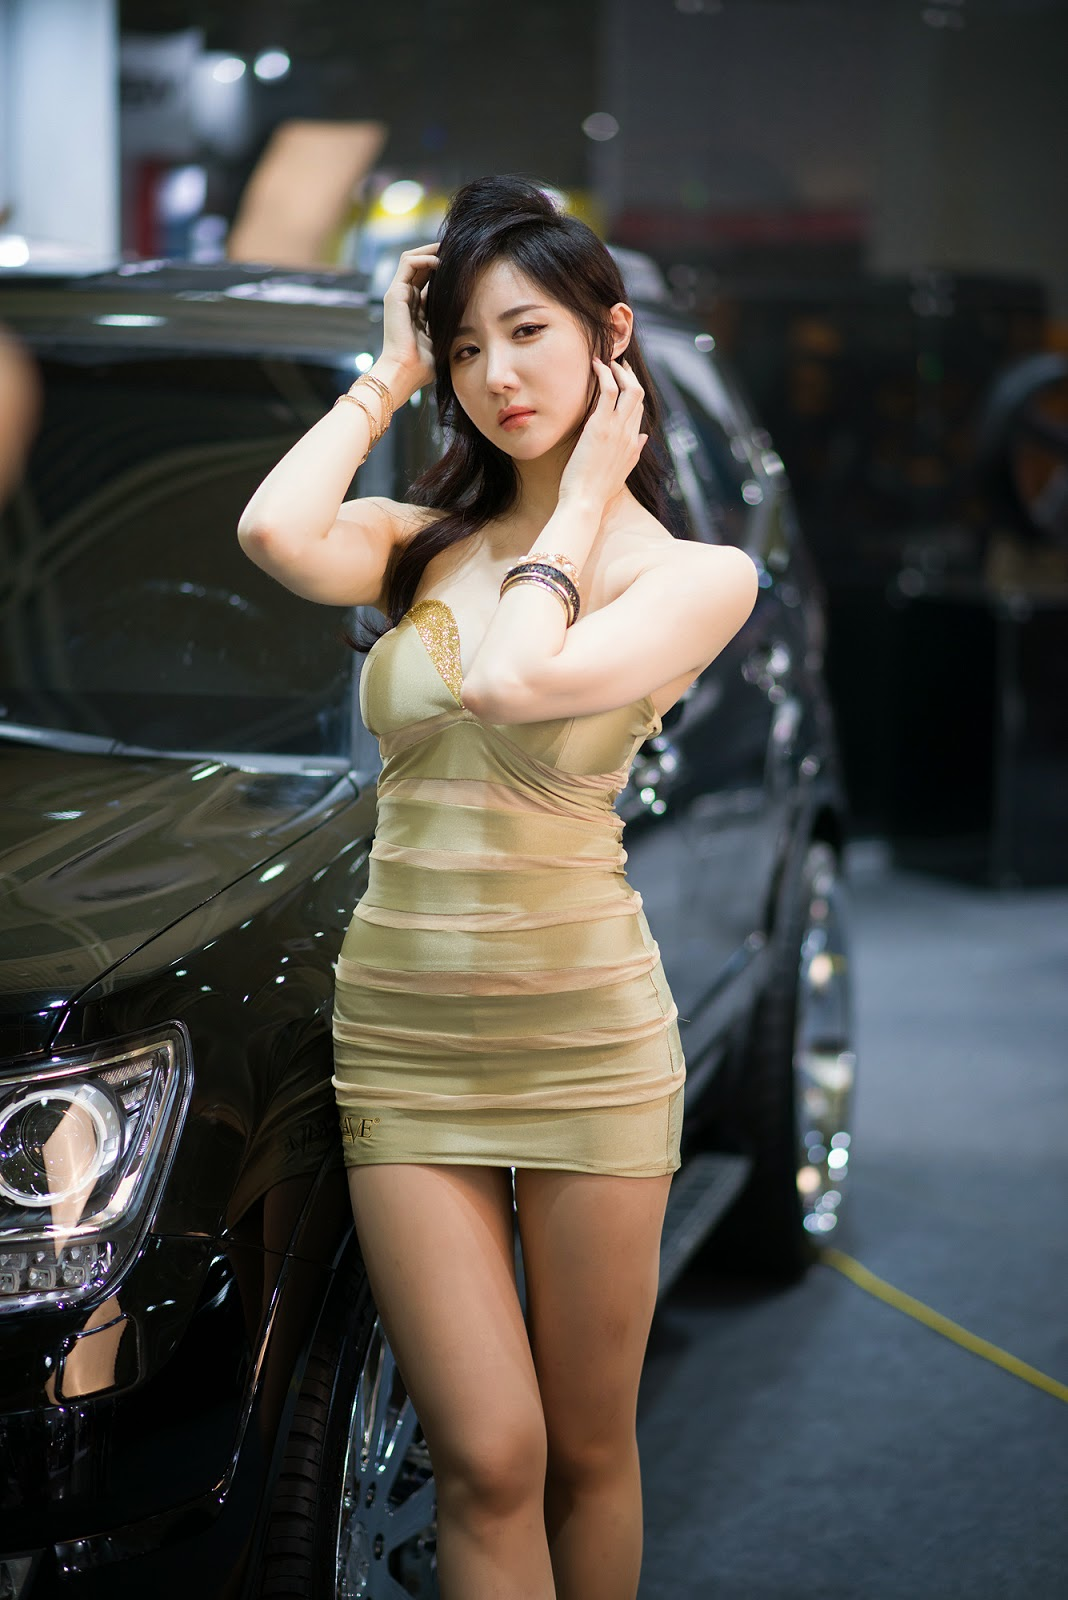 2 Yeon Da Bin - Seoul Auto Salon 2014 - very cute asian girl-girlcute4u.blogspot.com